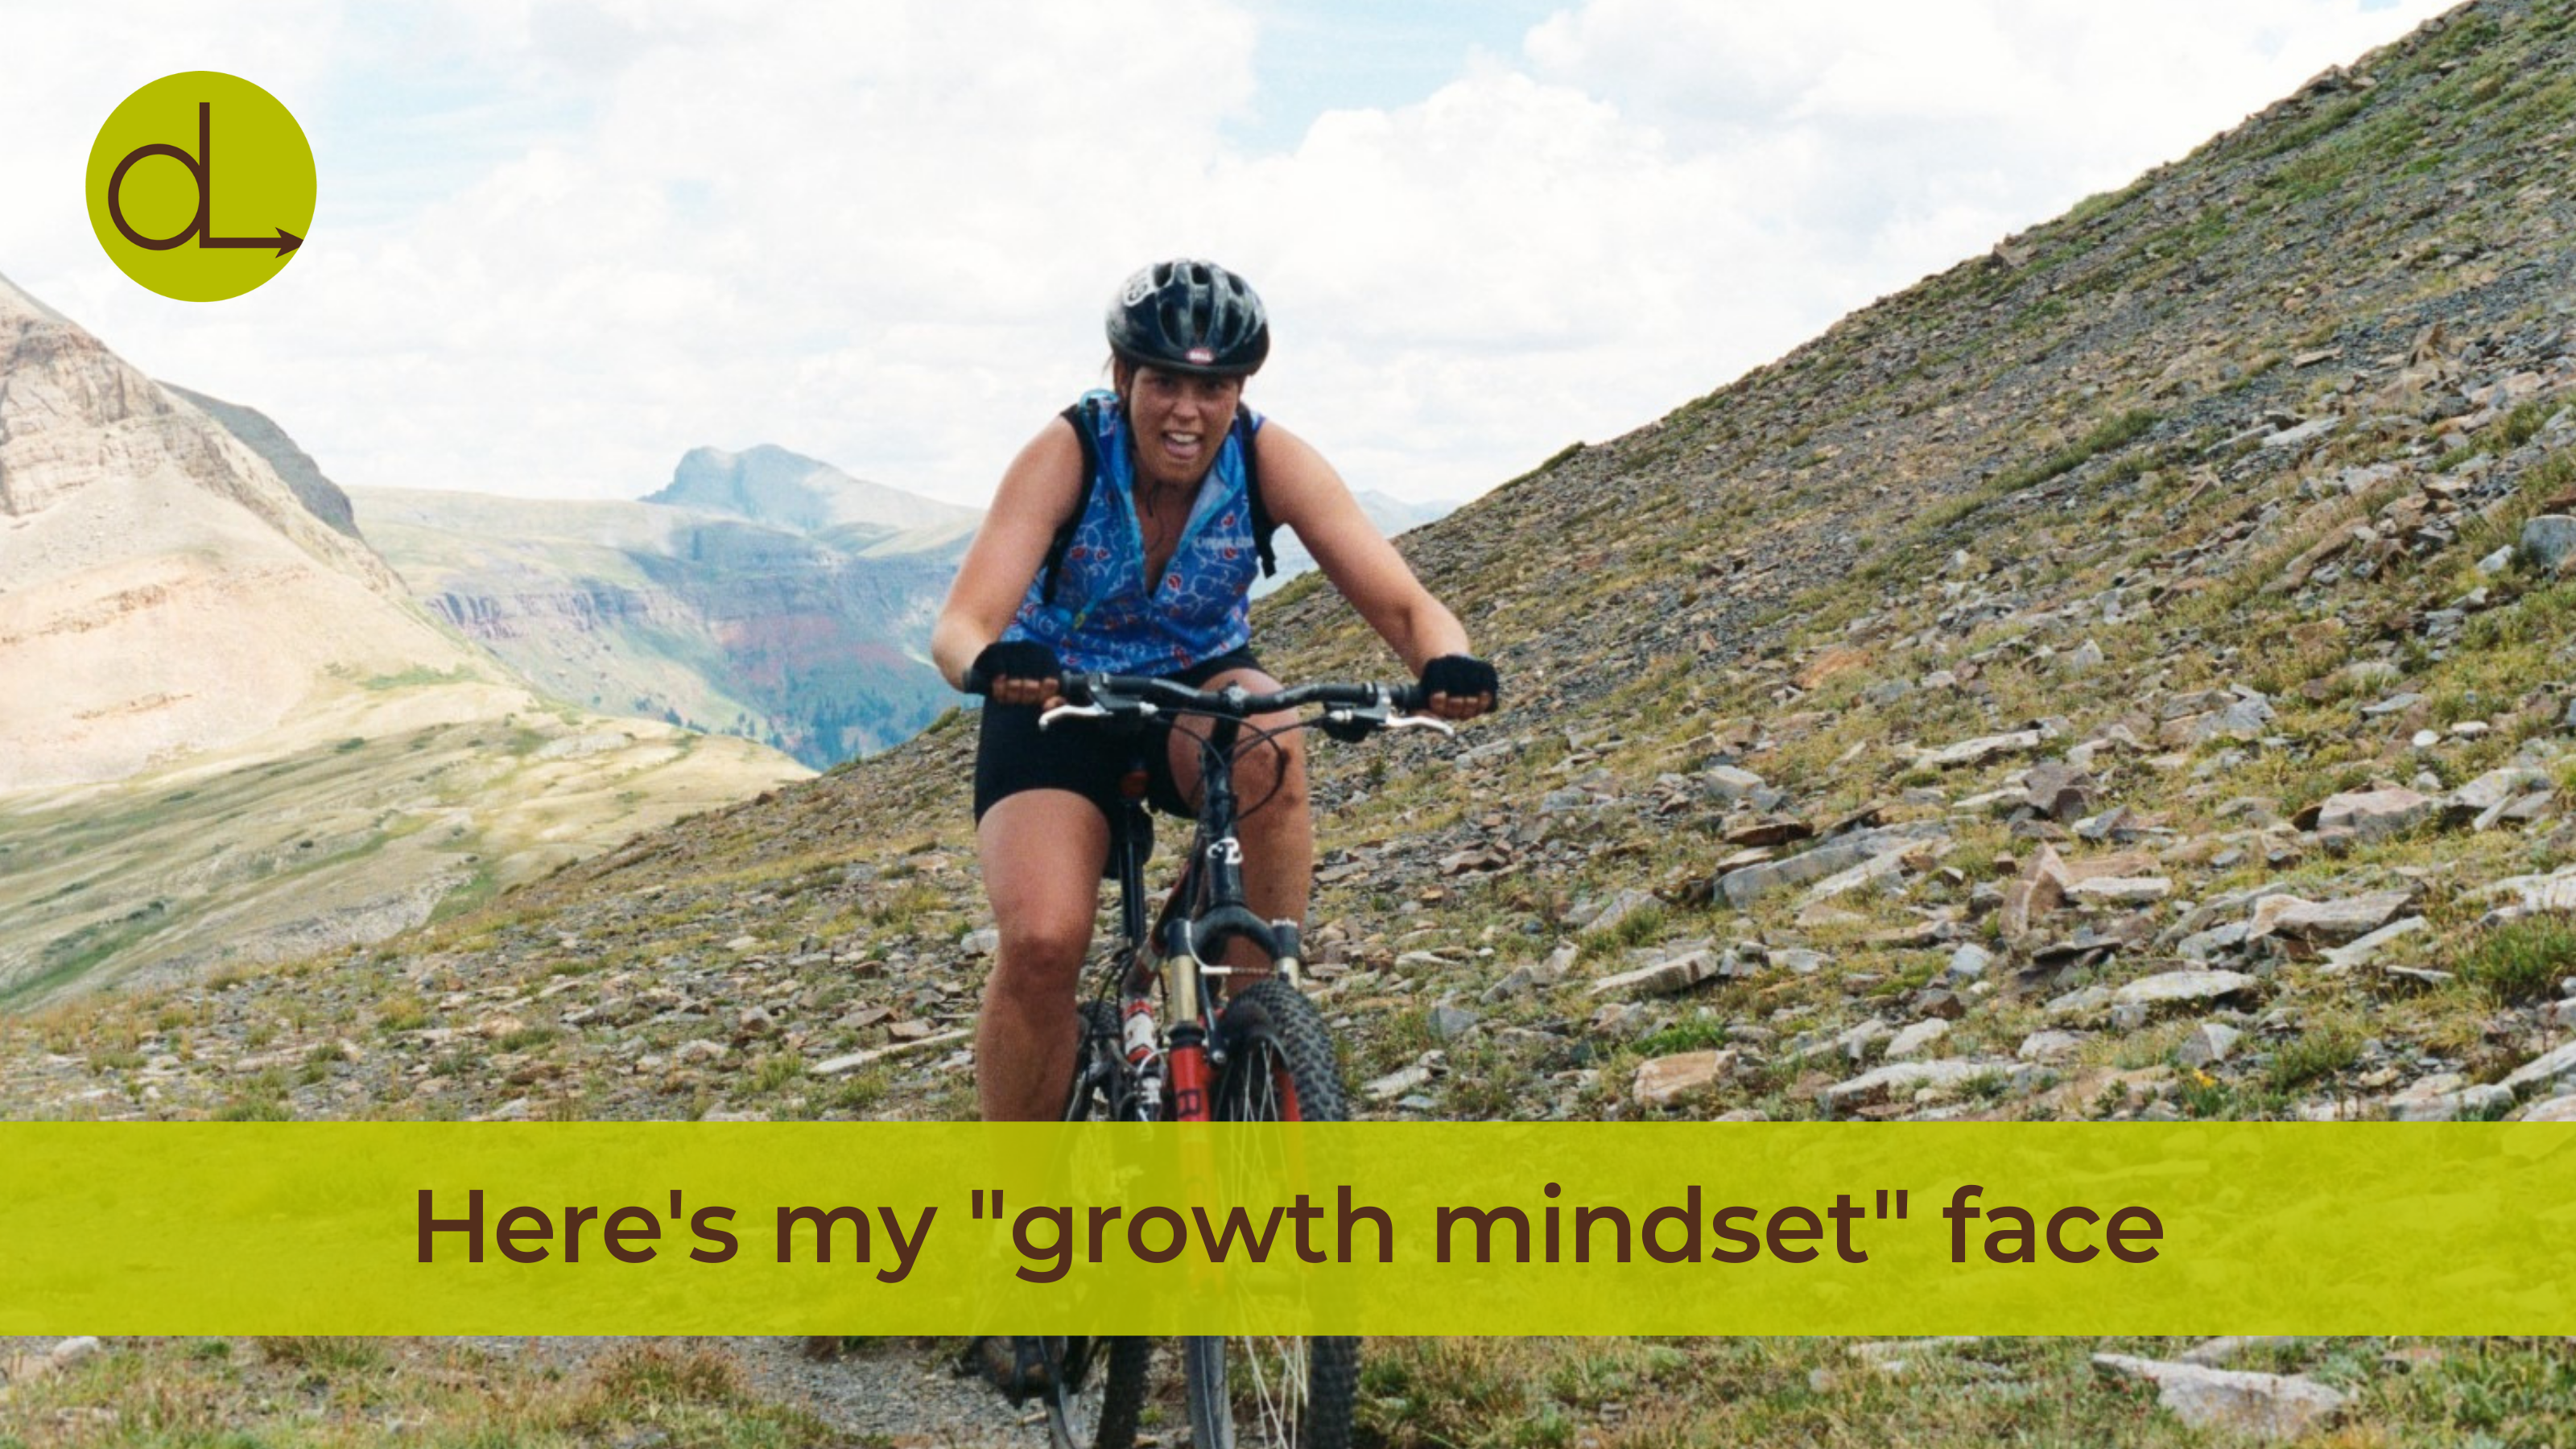 """Photo of Darcy mountain biking with the caption """"Here's my 'growth mindset' face"""""""